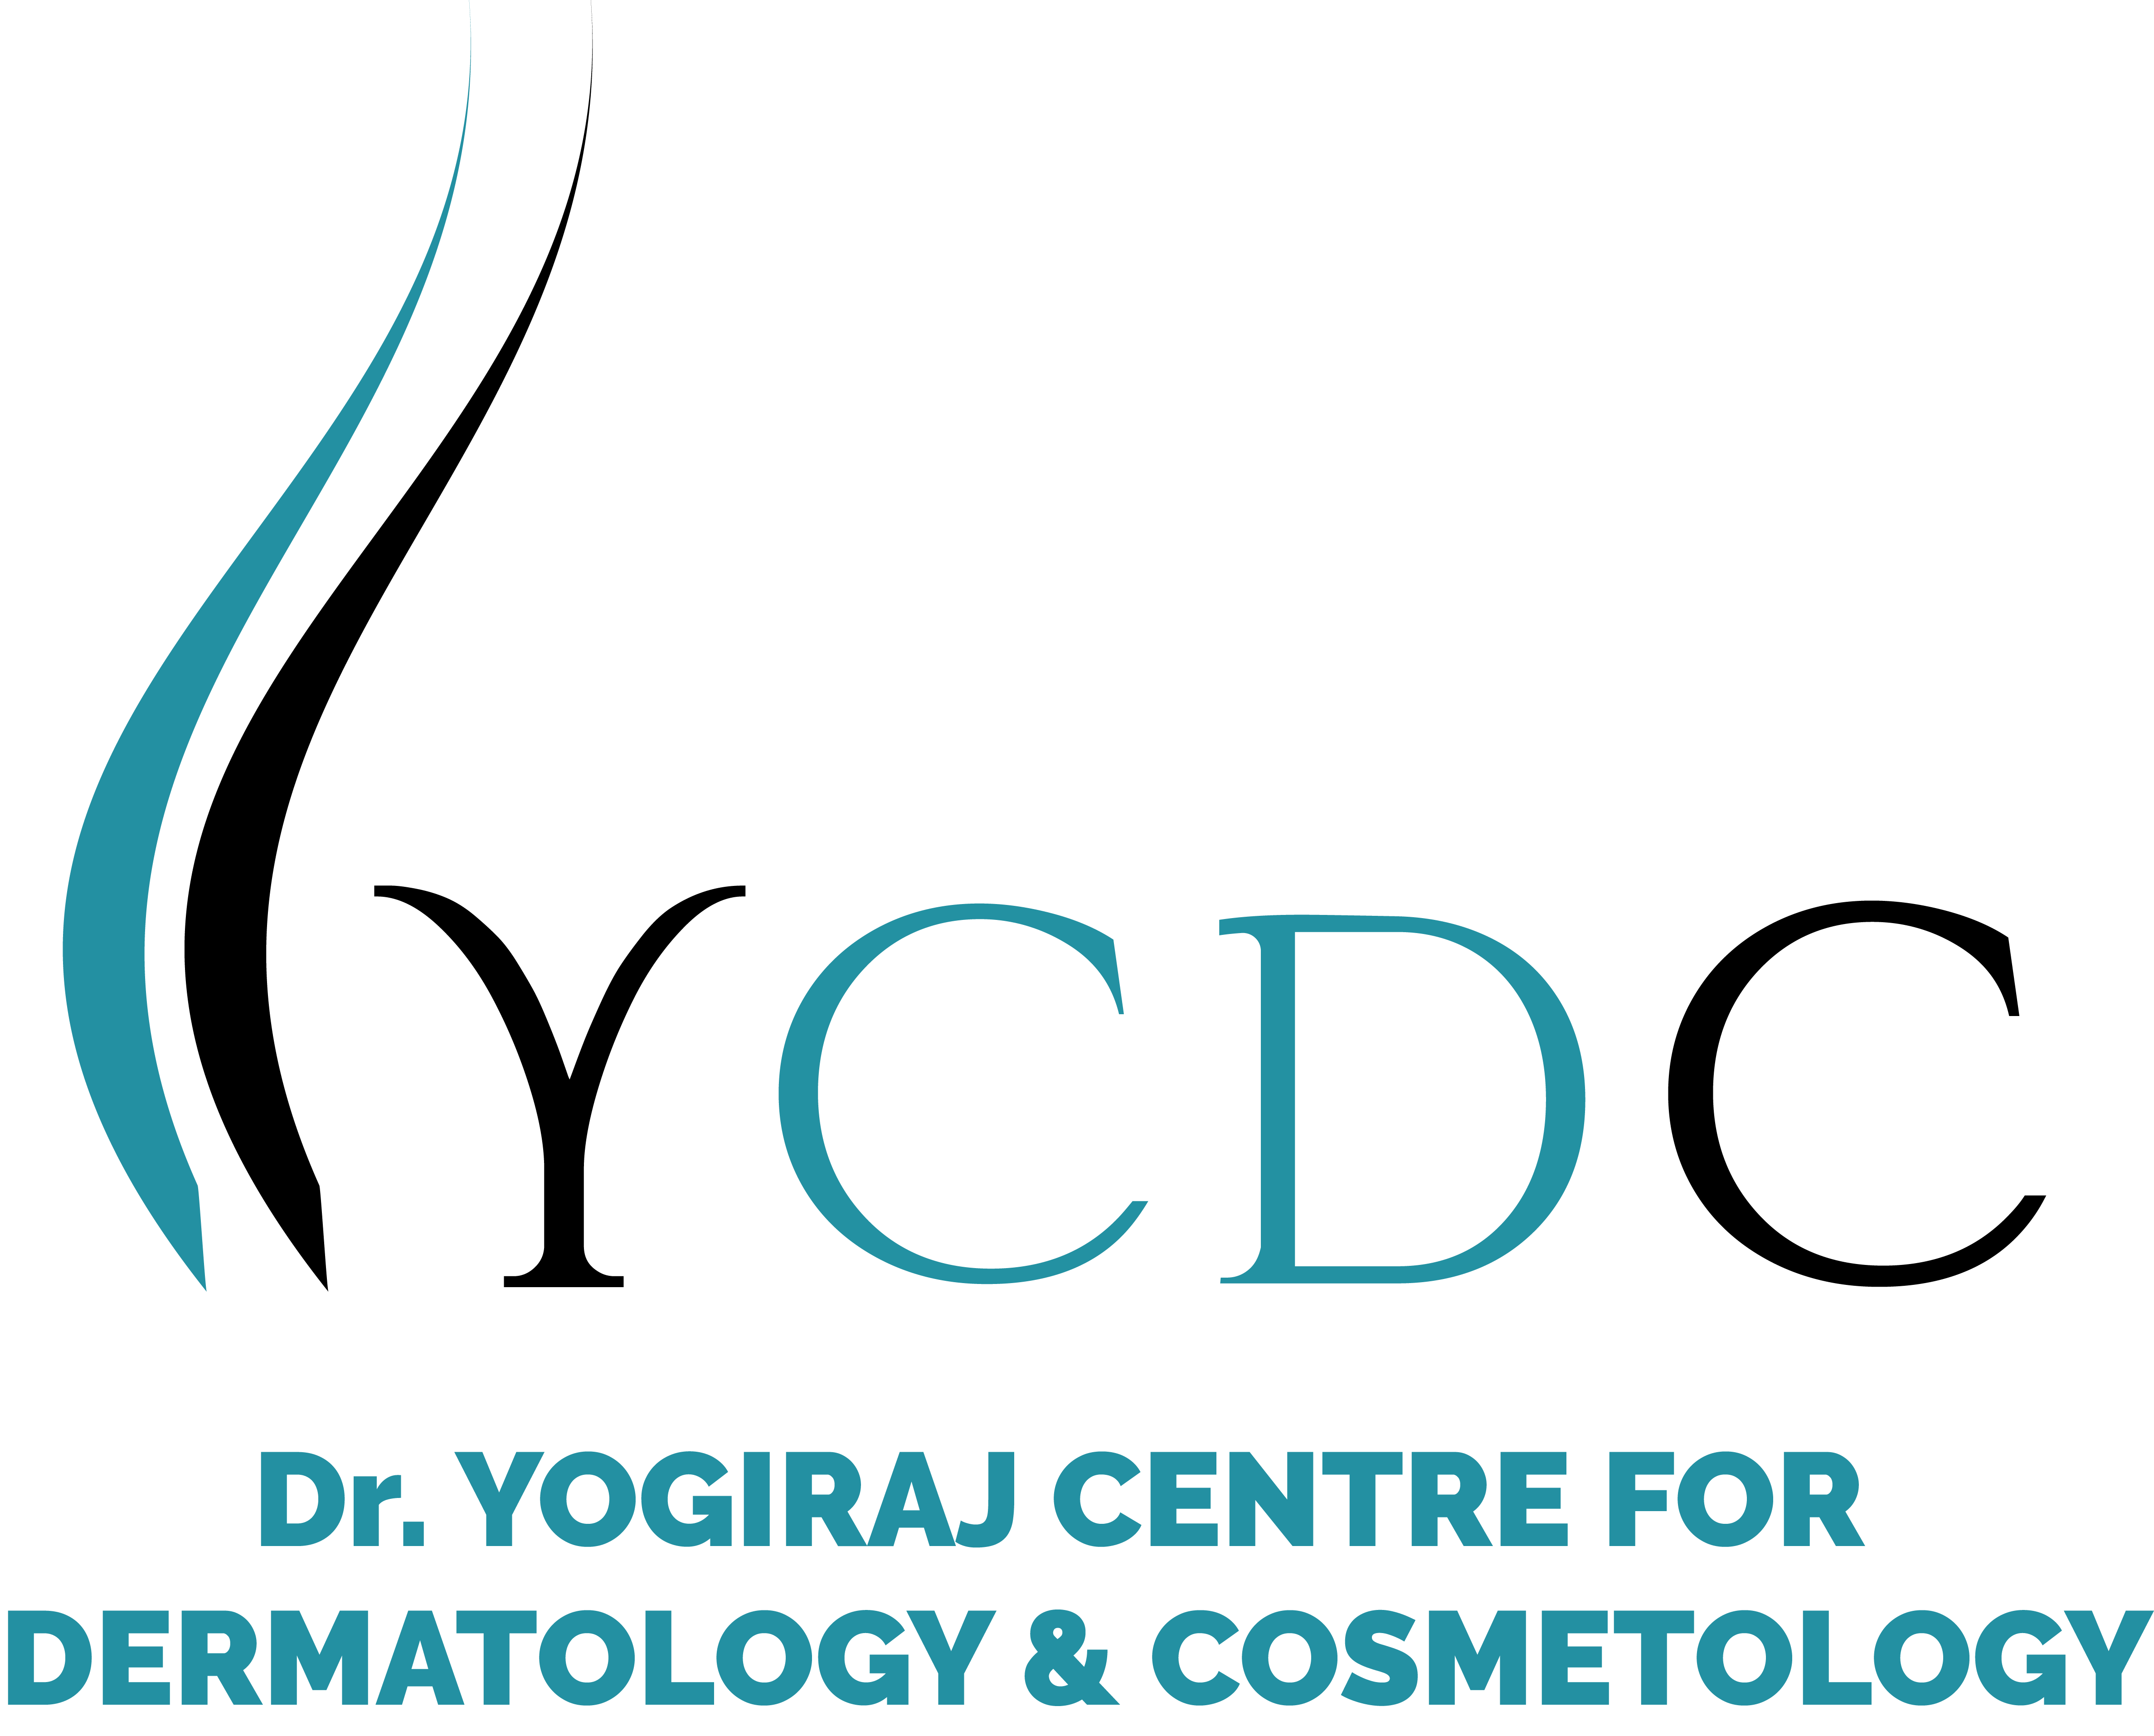 Yogiraj Centre for Dermatology & Cosmetology, Skin Clinic in